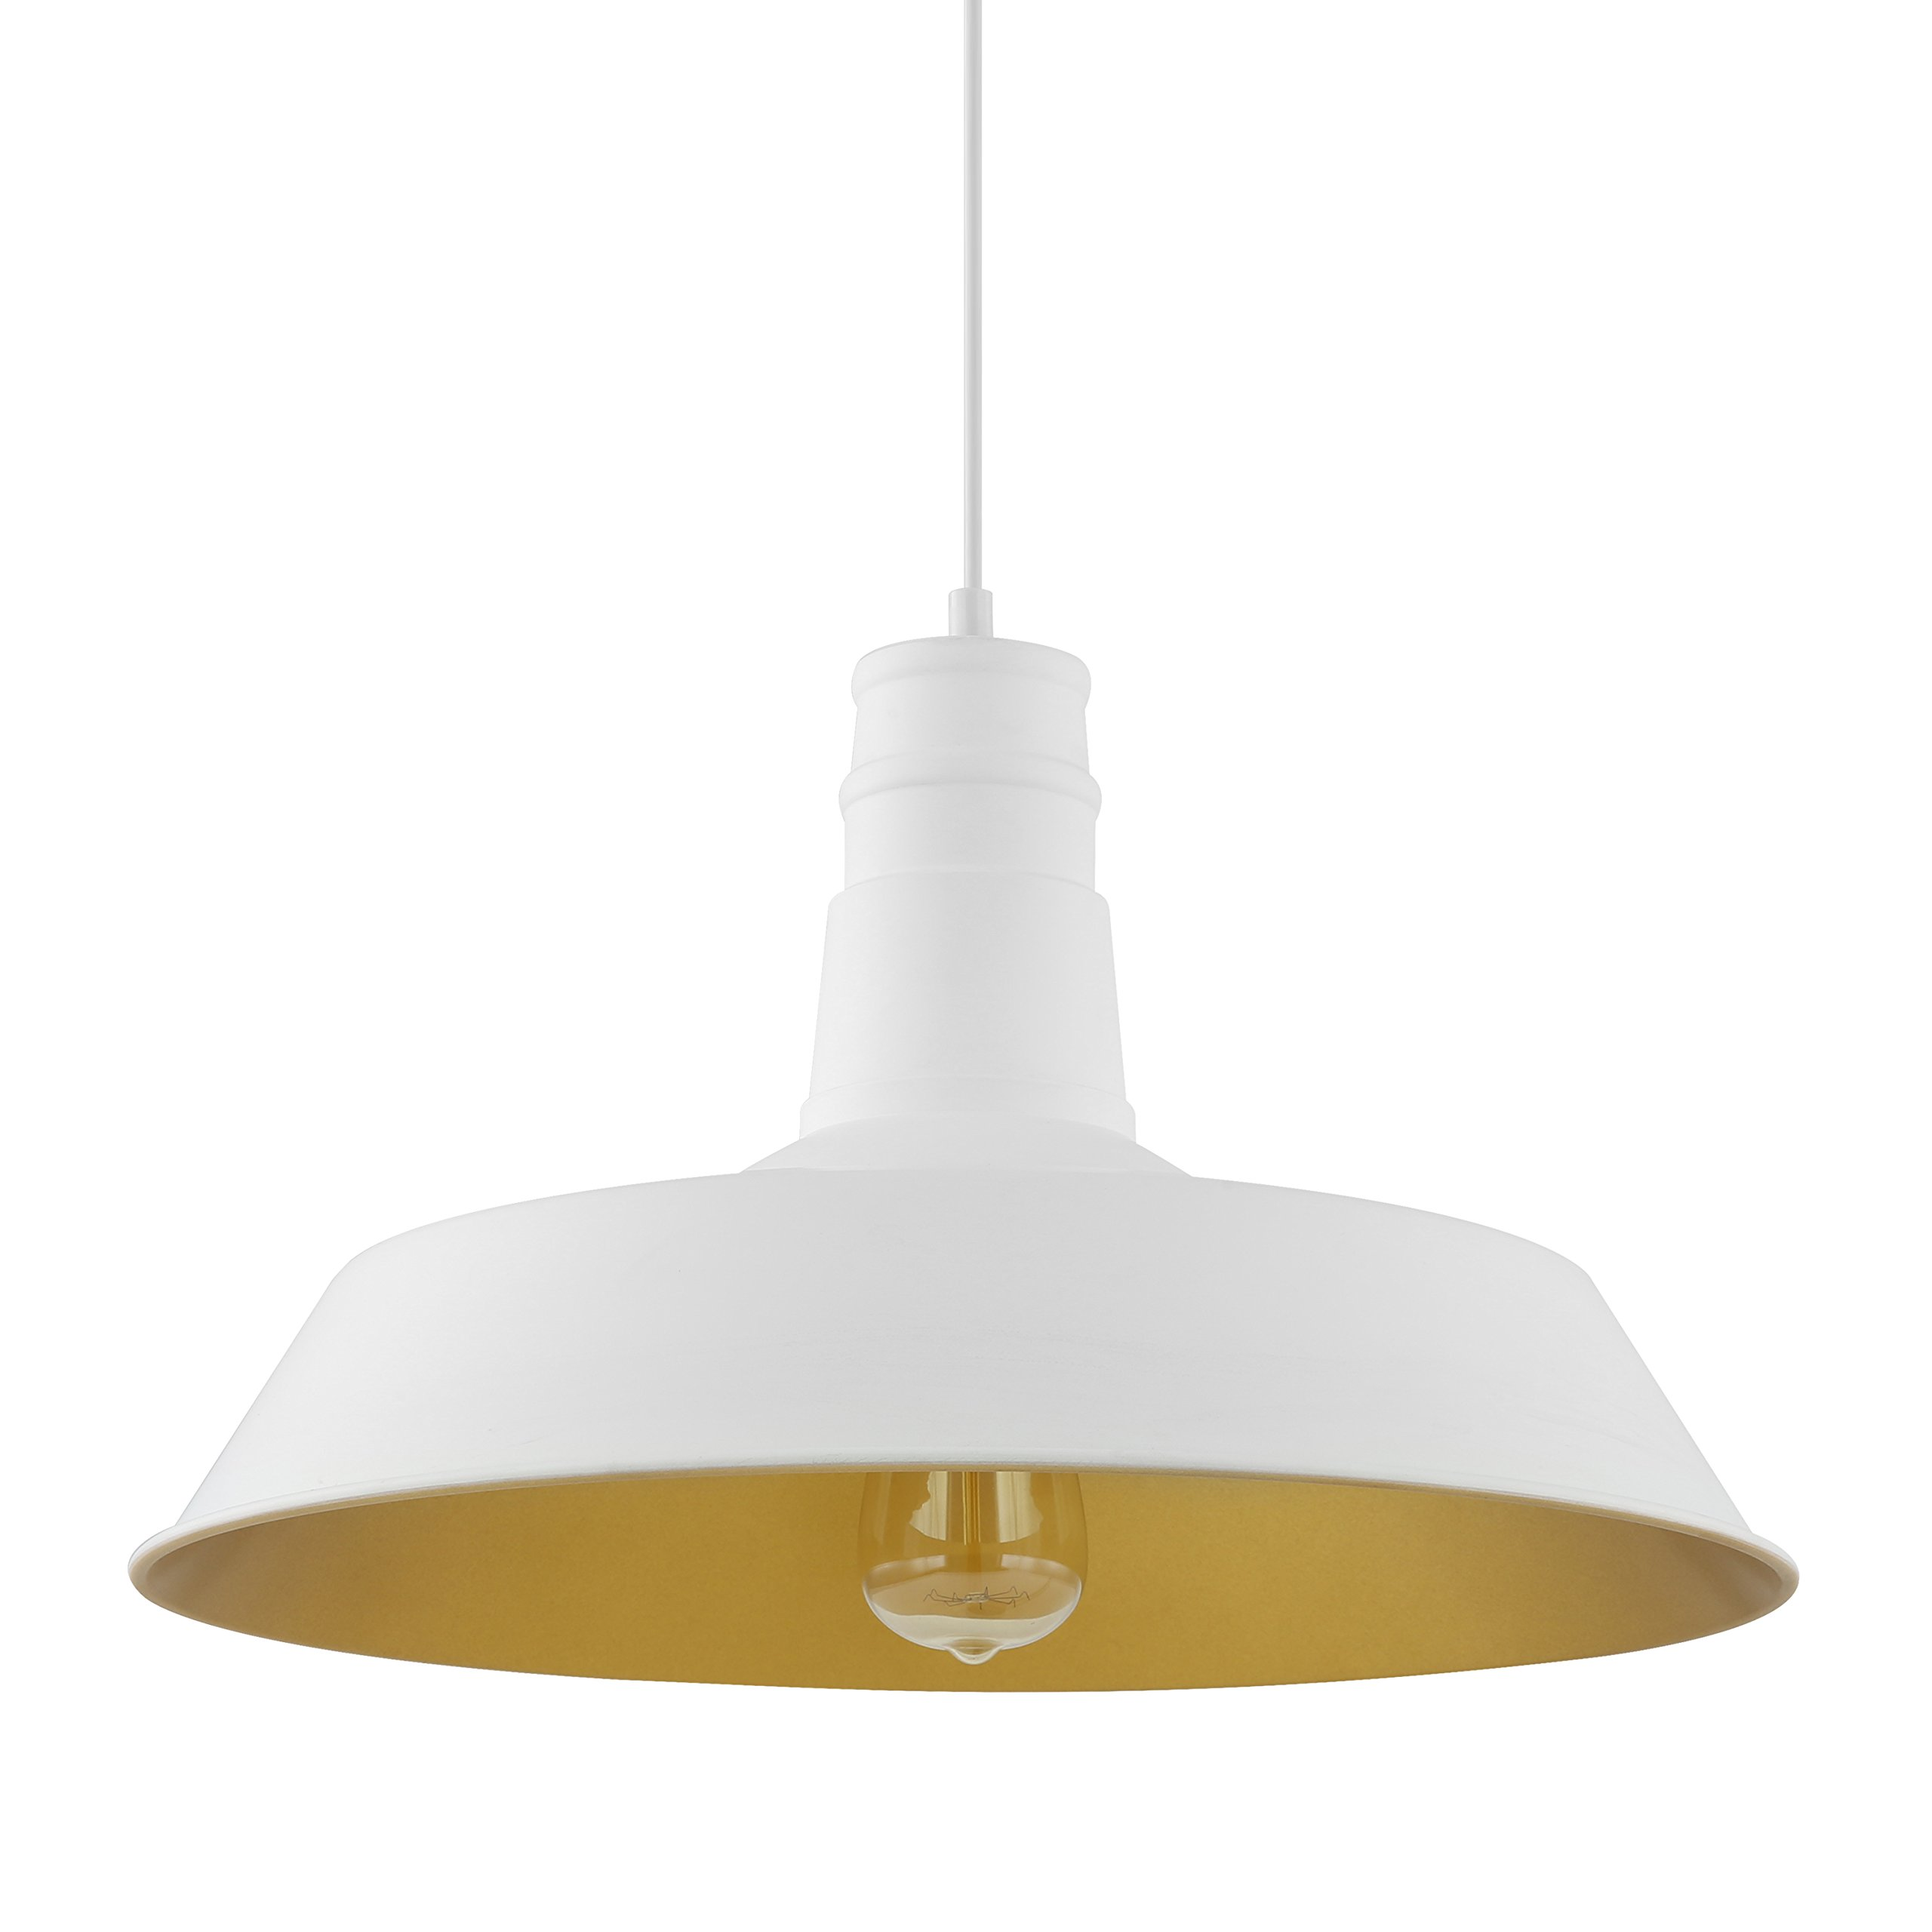 Light Society Stafford Large Pendant Light, Matte White Shade with Gold Interior, Vintage Modern Industrial Farmhouse Lighting Fixture (LS-C168-WHI)